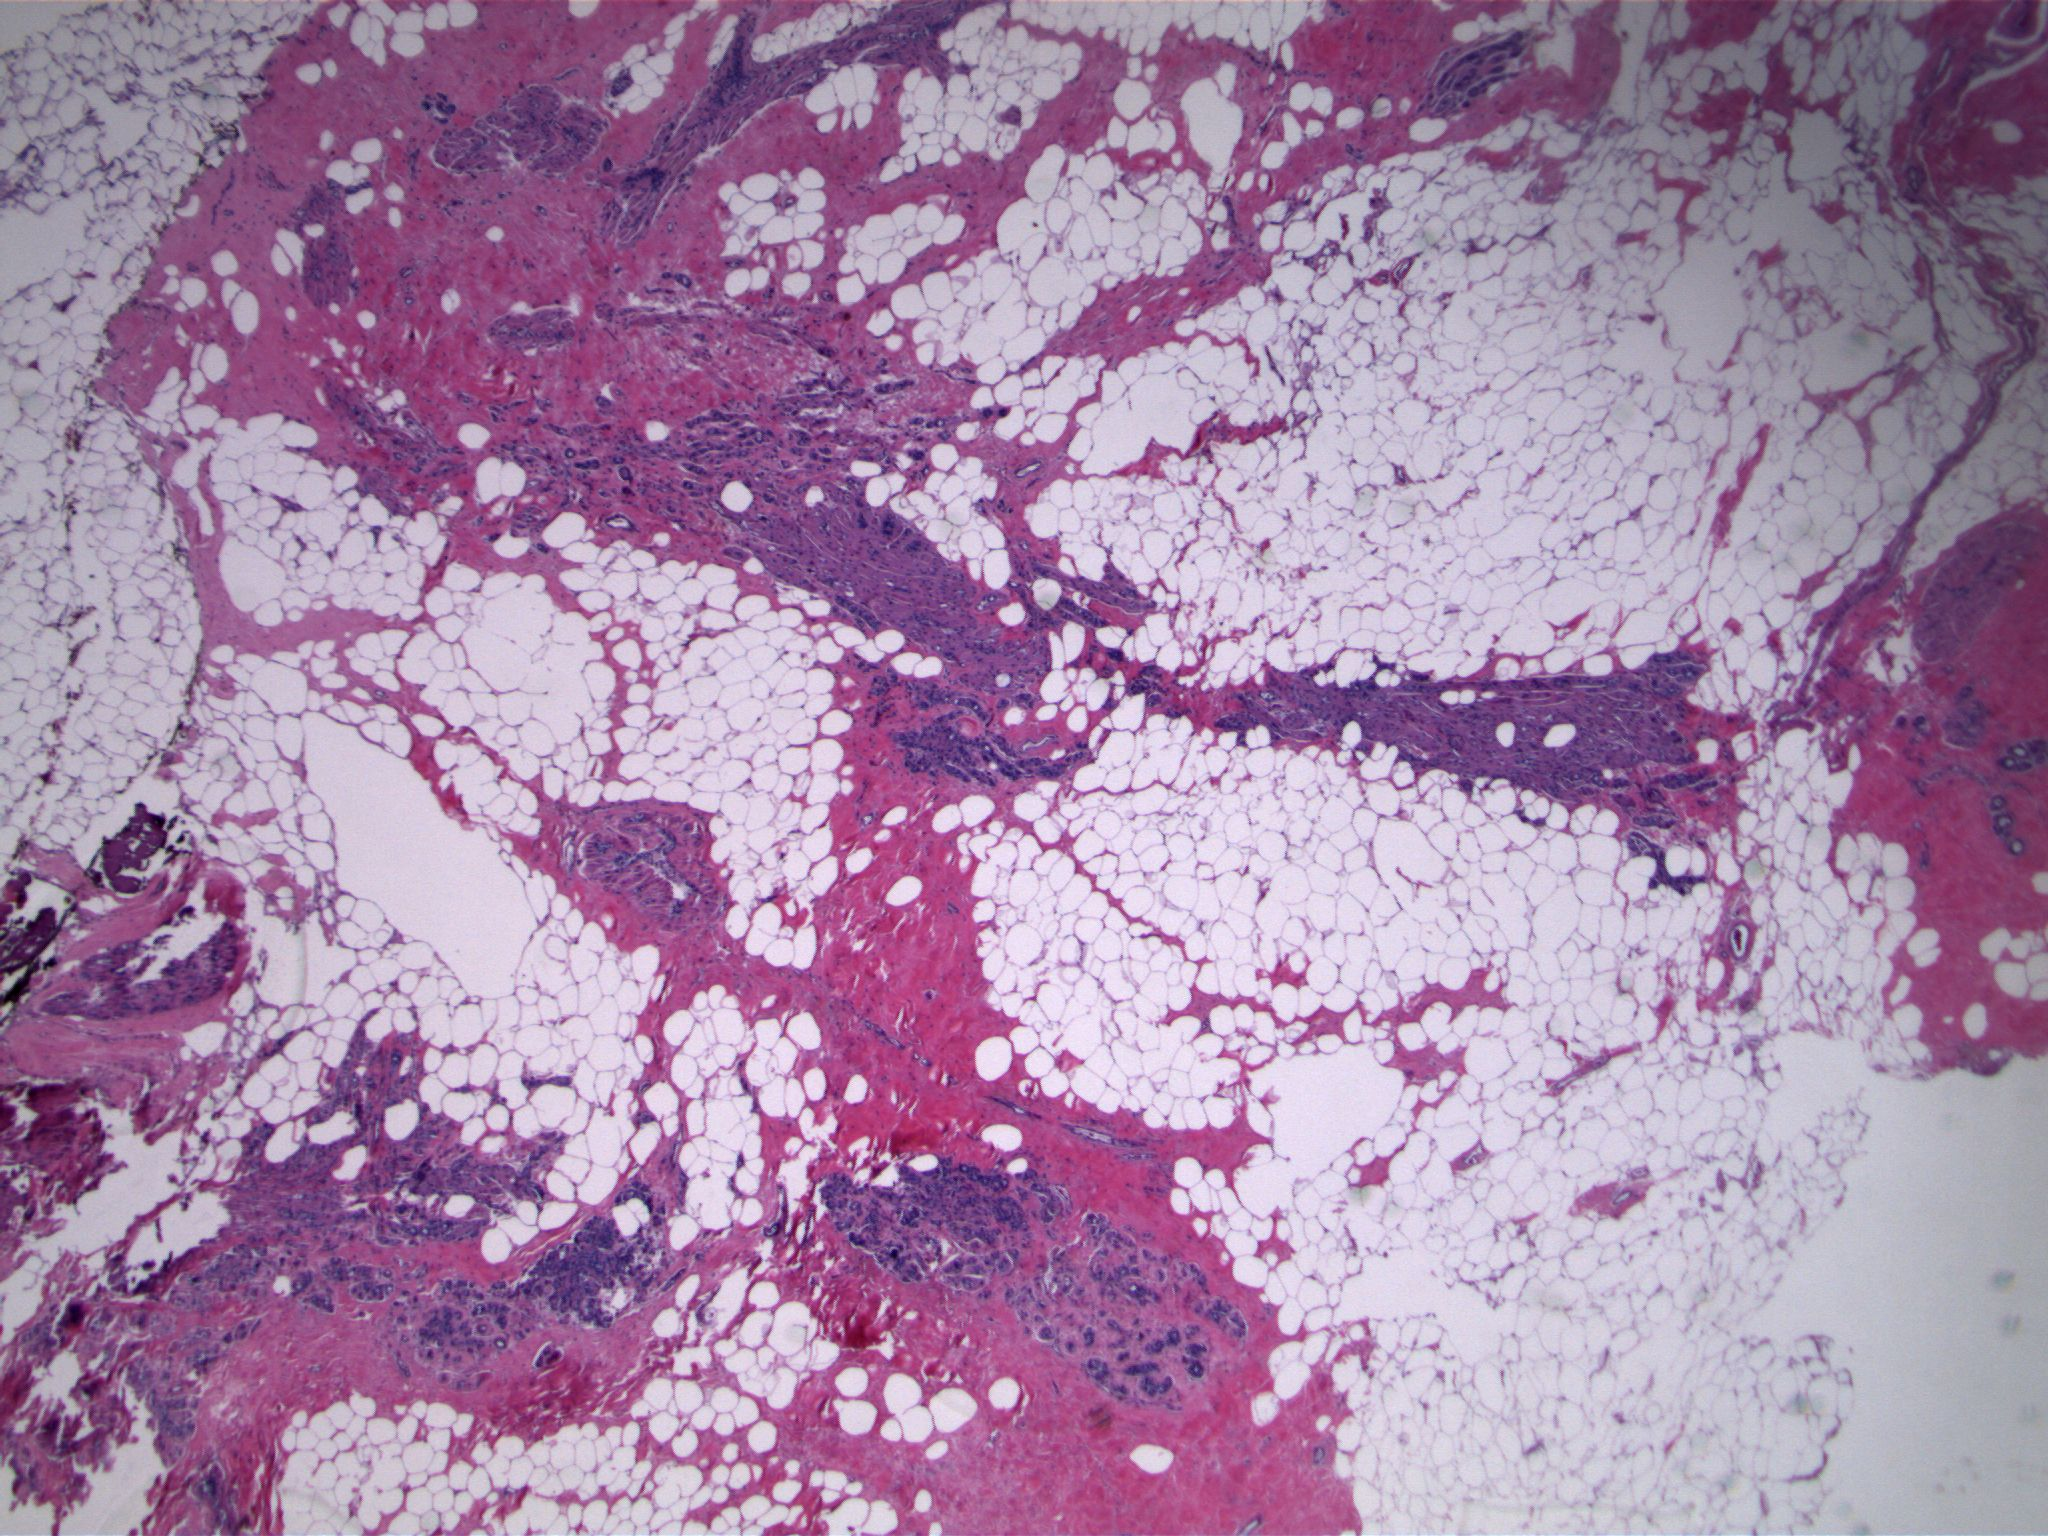 Image 1.  The biopsy specimen contains sclerosing adenosis, characterized by a proliferation of small, elongated glandular structures that are arranged parallel to each other.  At low power, the maintenance of a lobulocentric configuration is evident.